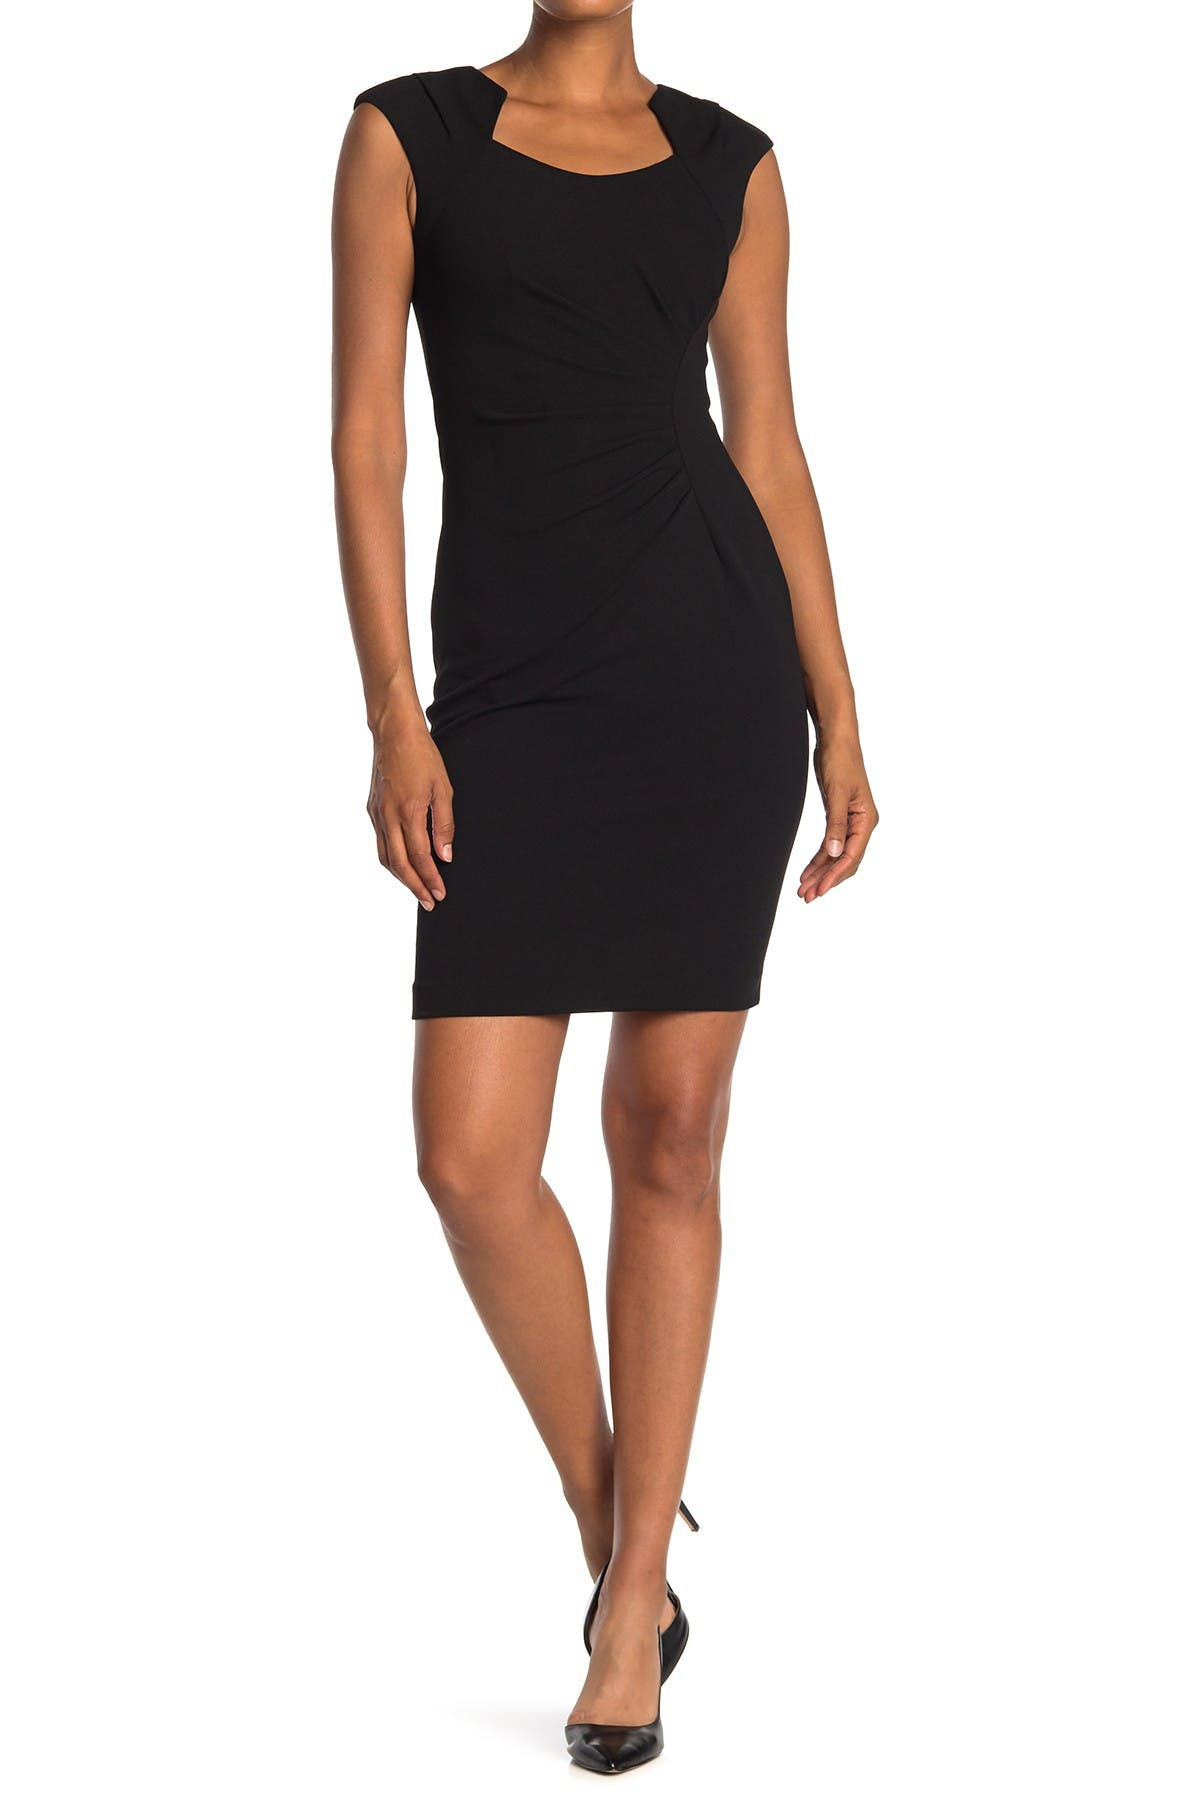 Image of Calvin Klein Horseshoe Neck Sheath Dress